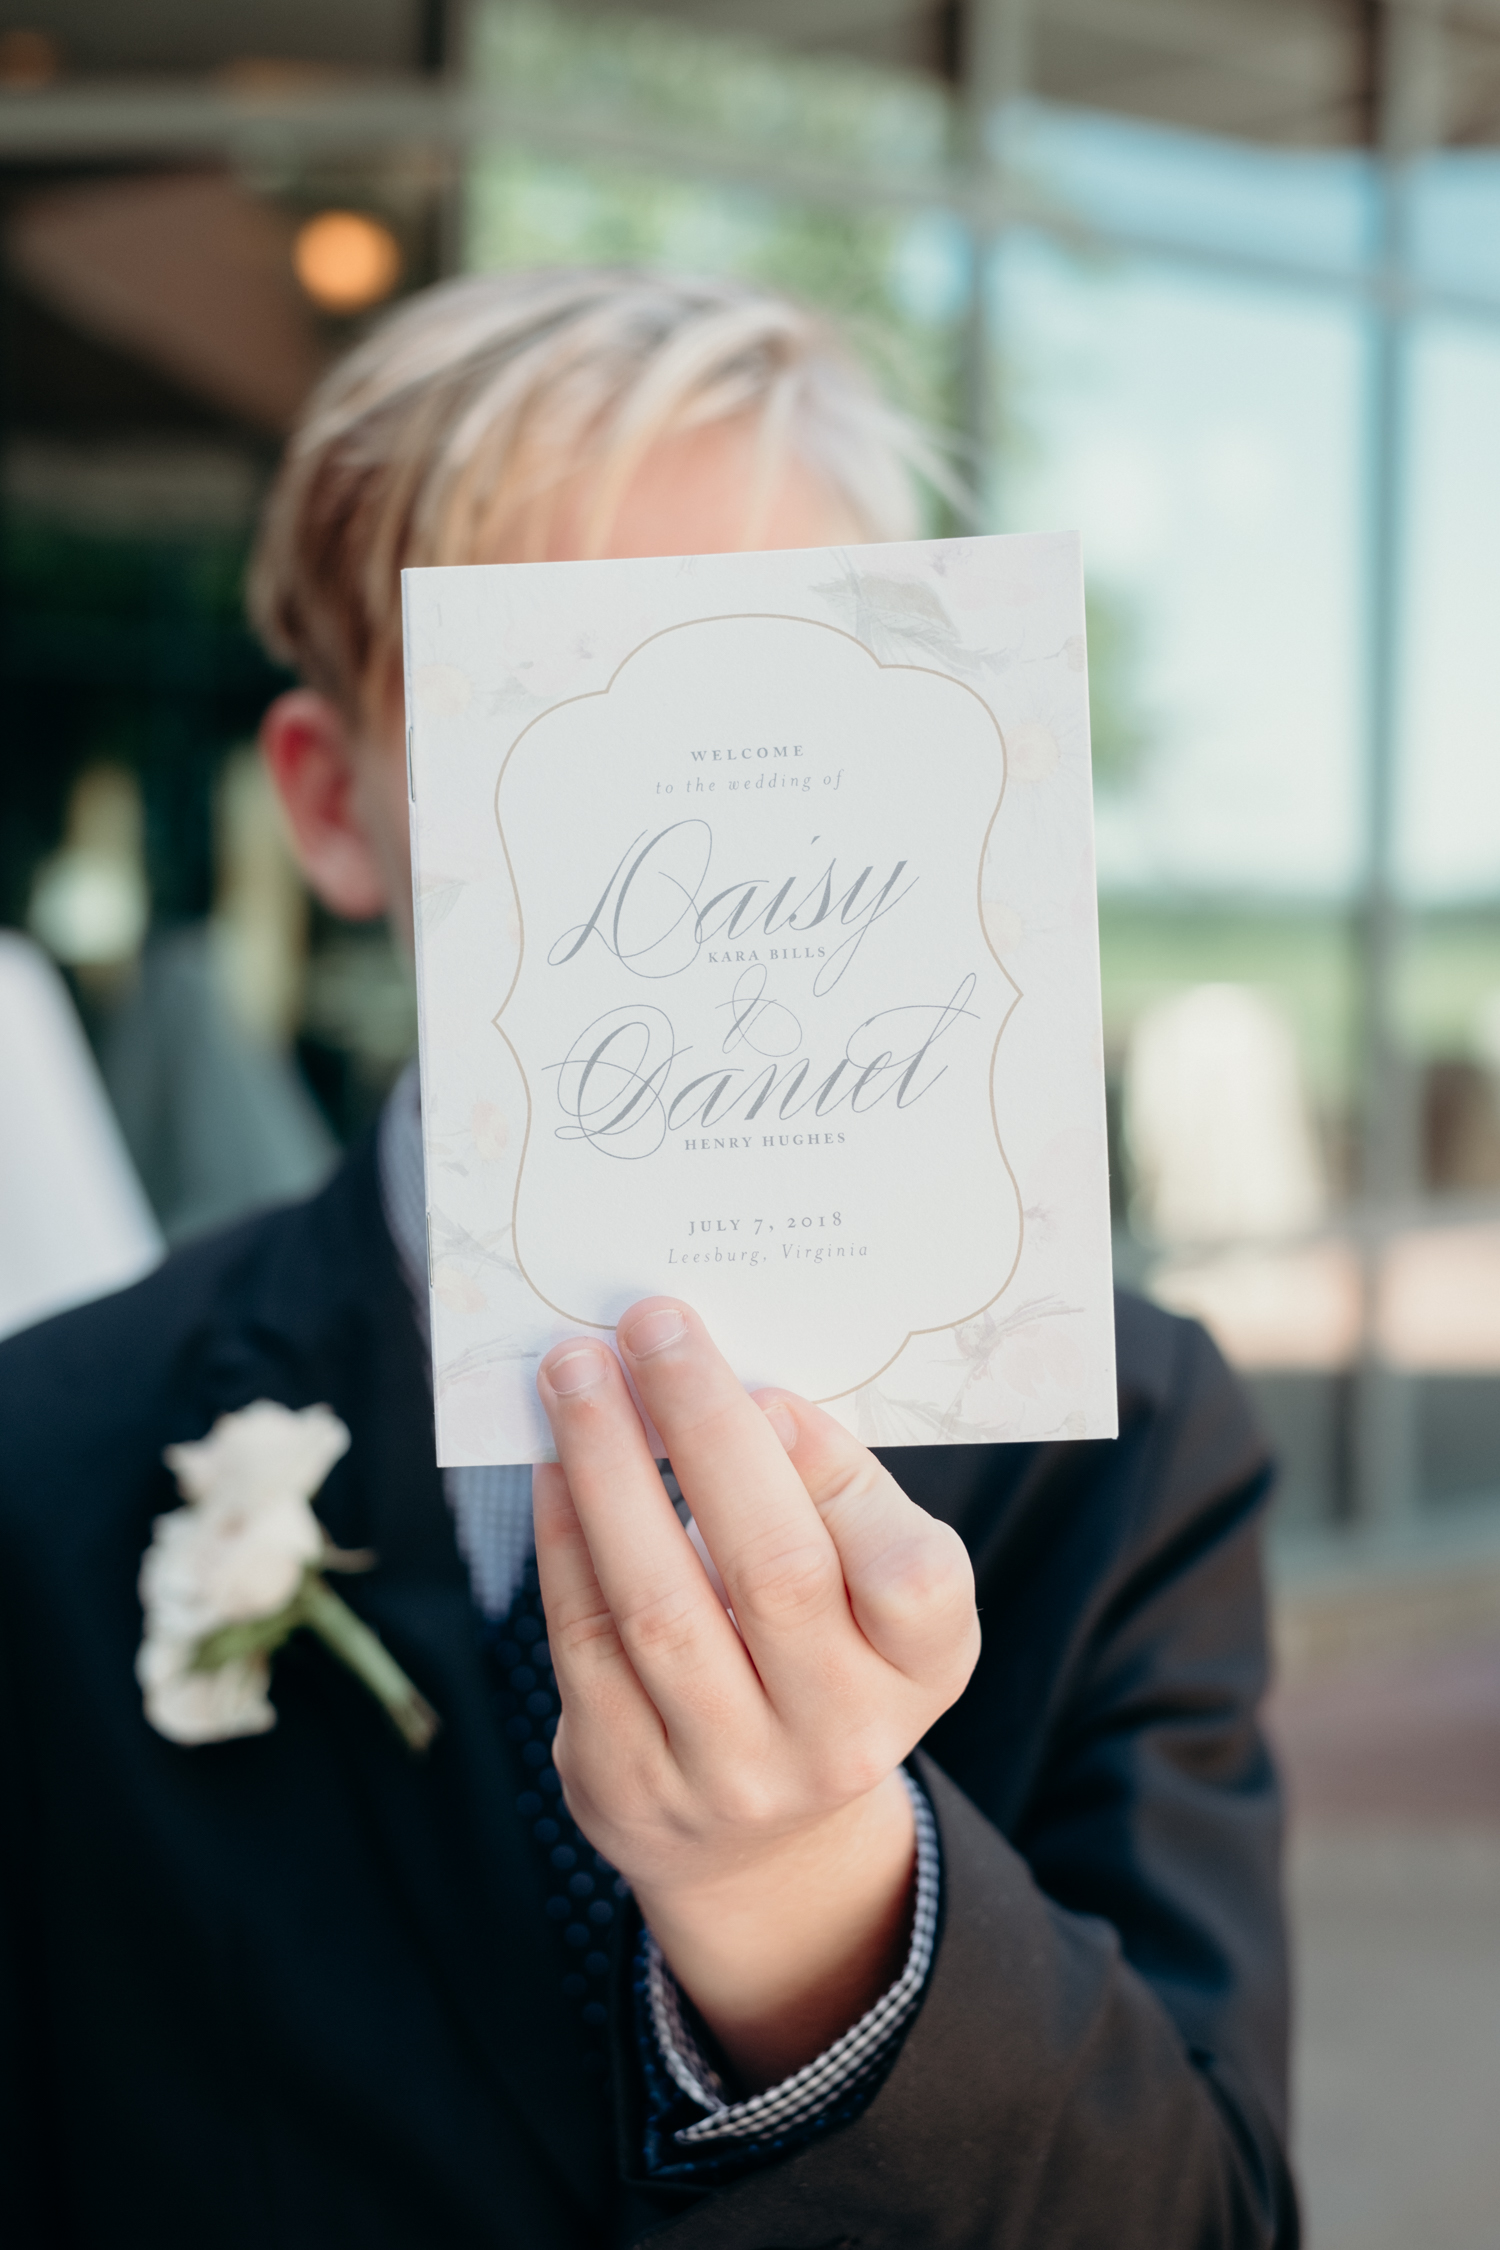 A boy holds up the program for a wedding ceremony at Lansdowne Resort.